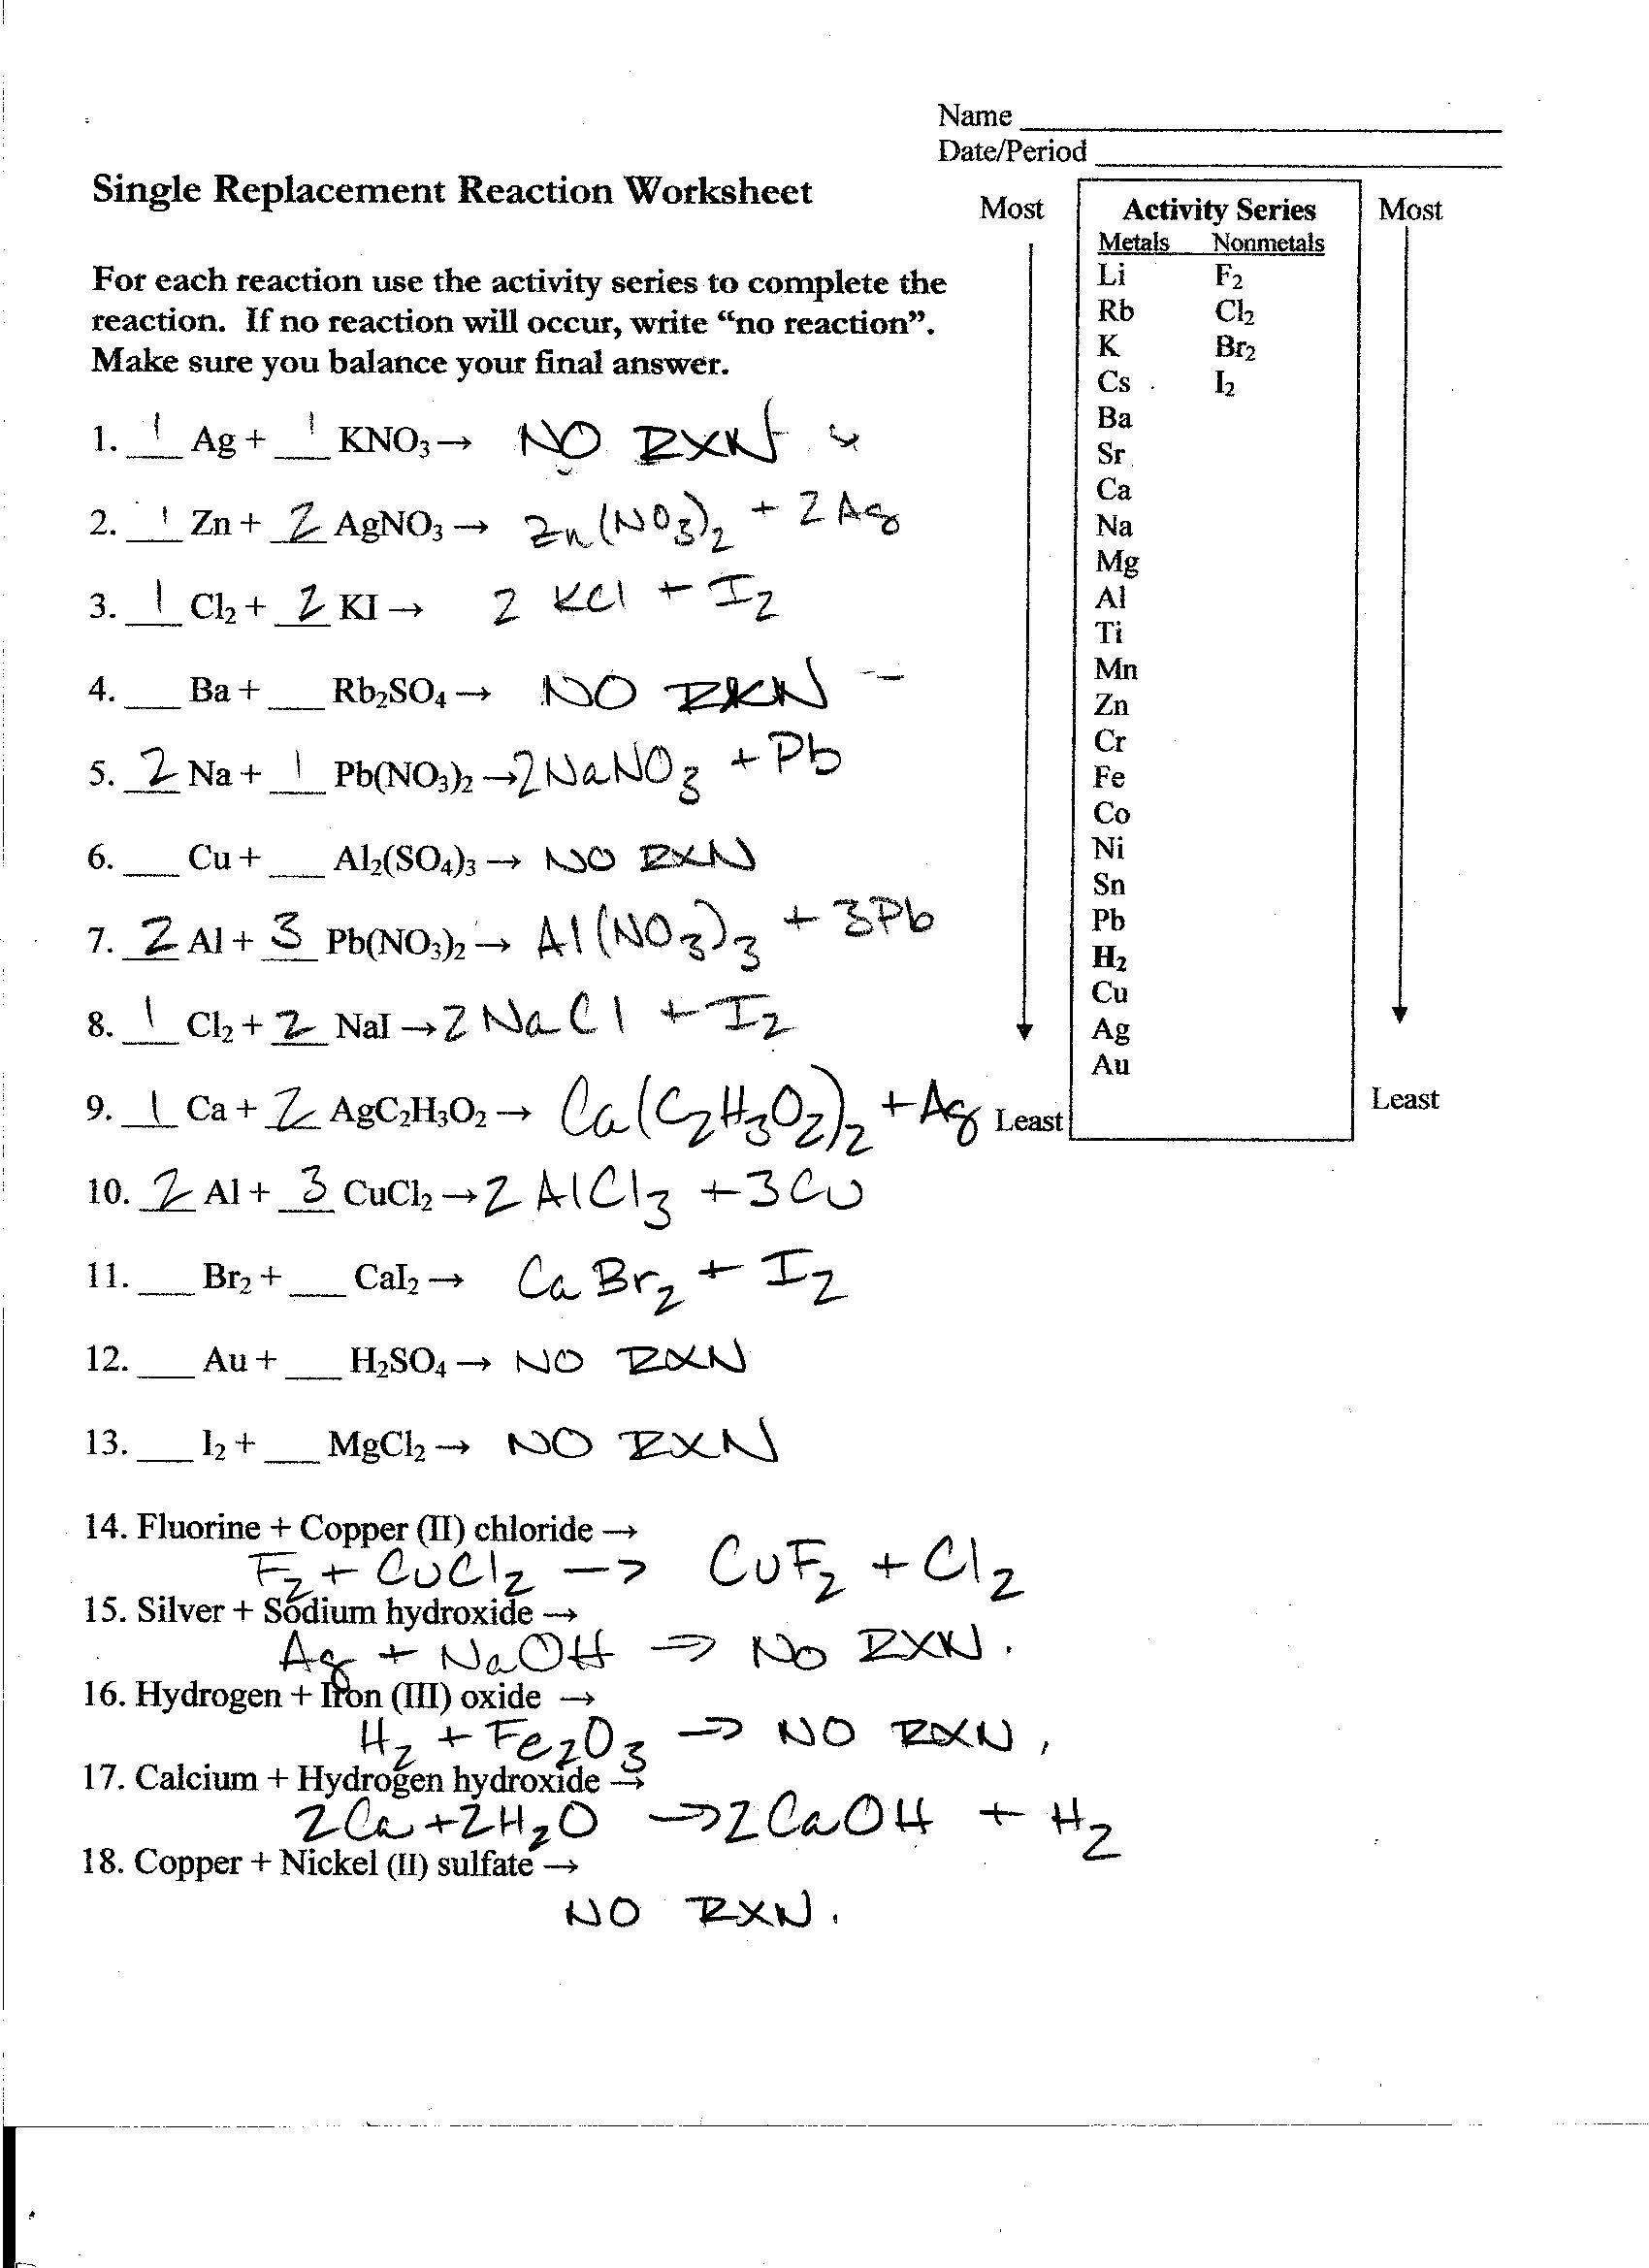 Single Replacement Reaction Worksheet Answers Worksheets ...